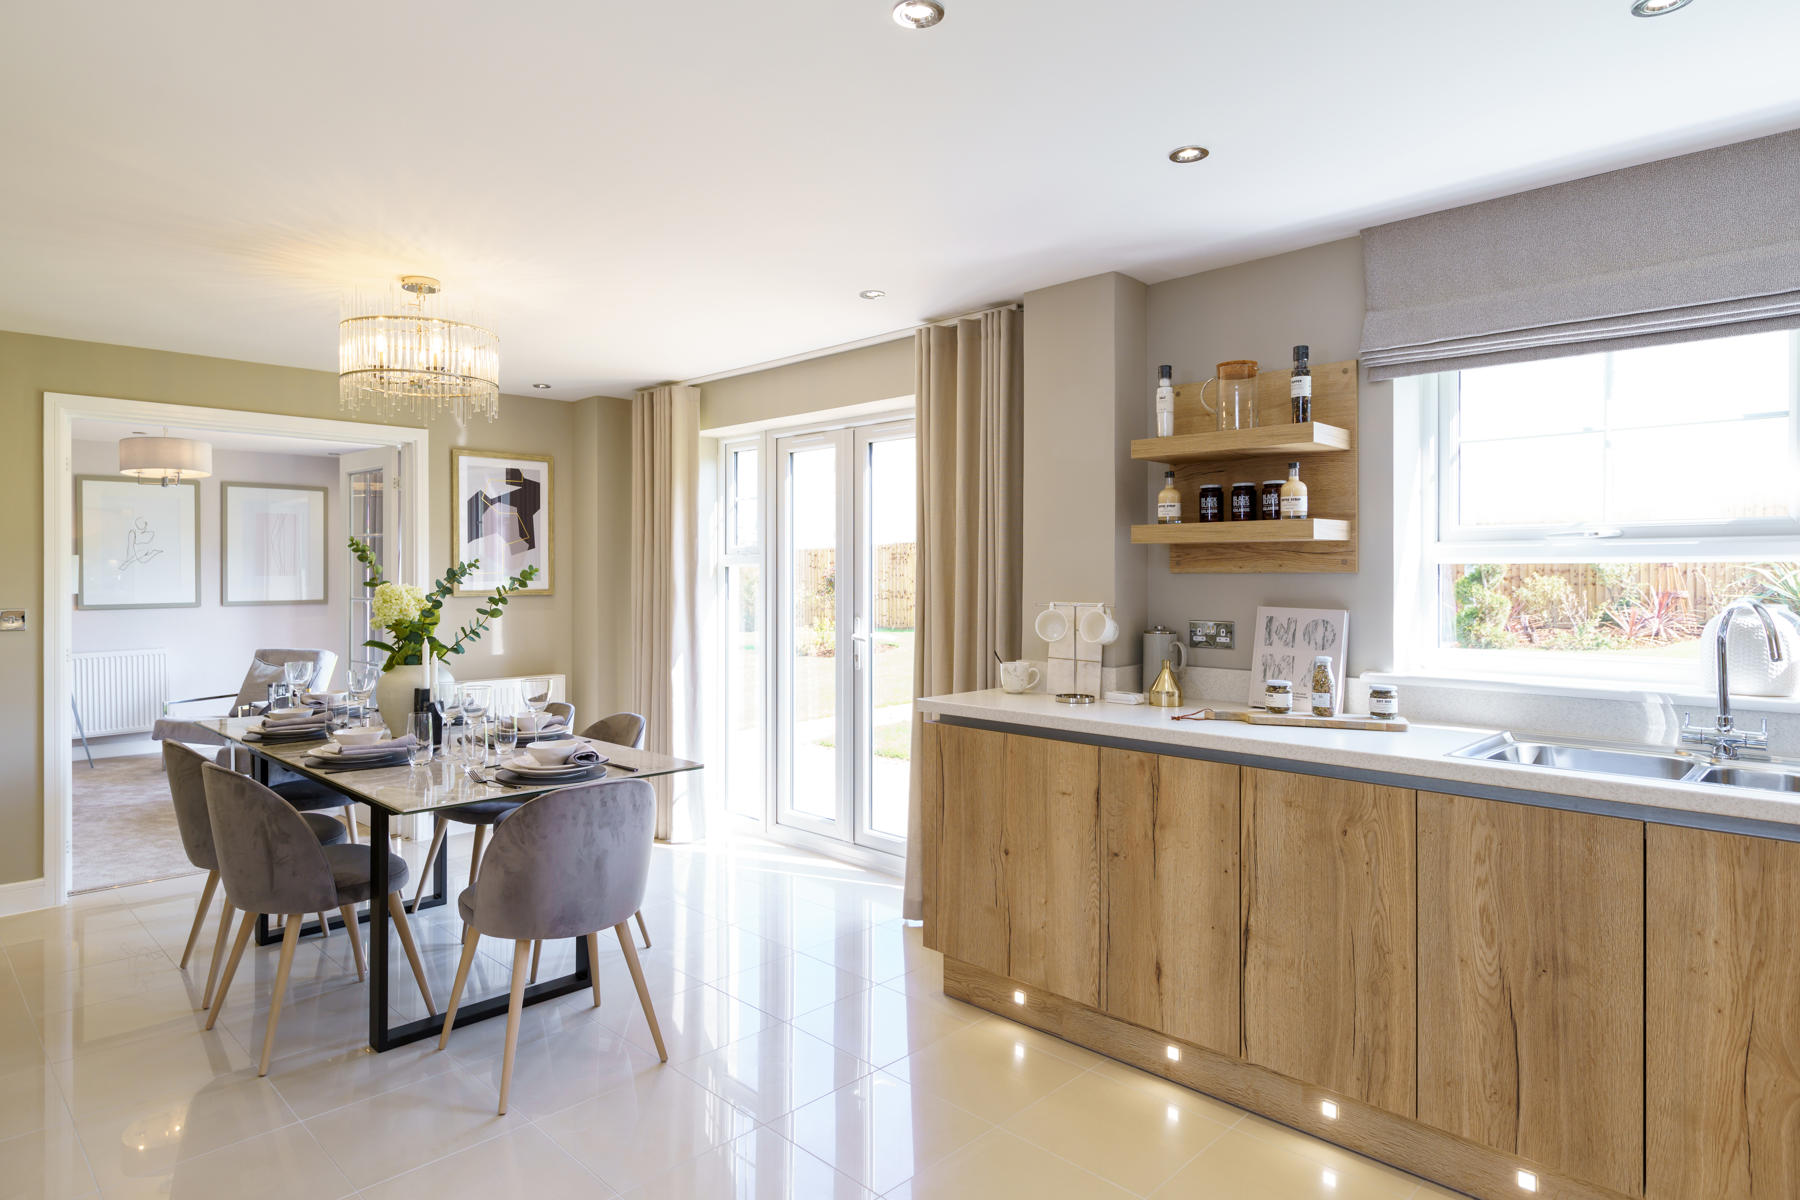 TW SW_Clare Garden Village_Heydon_Kitchen 3_1800x1200